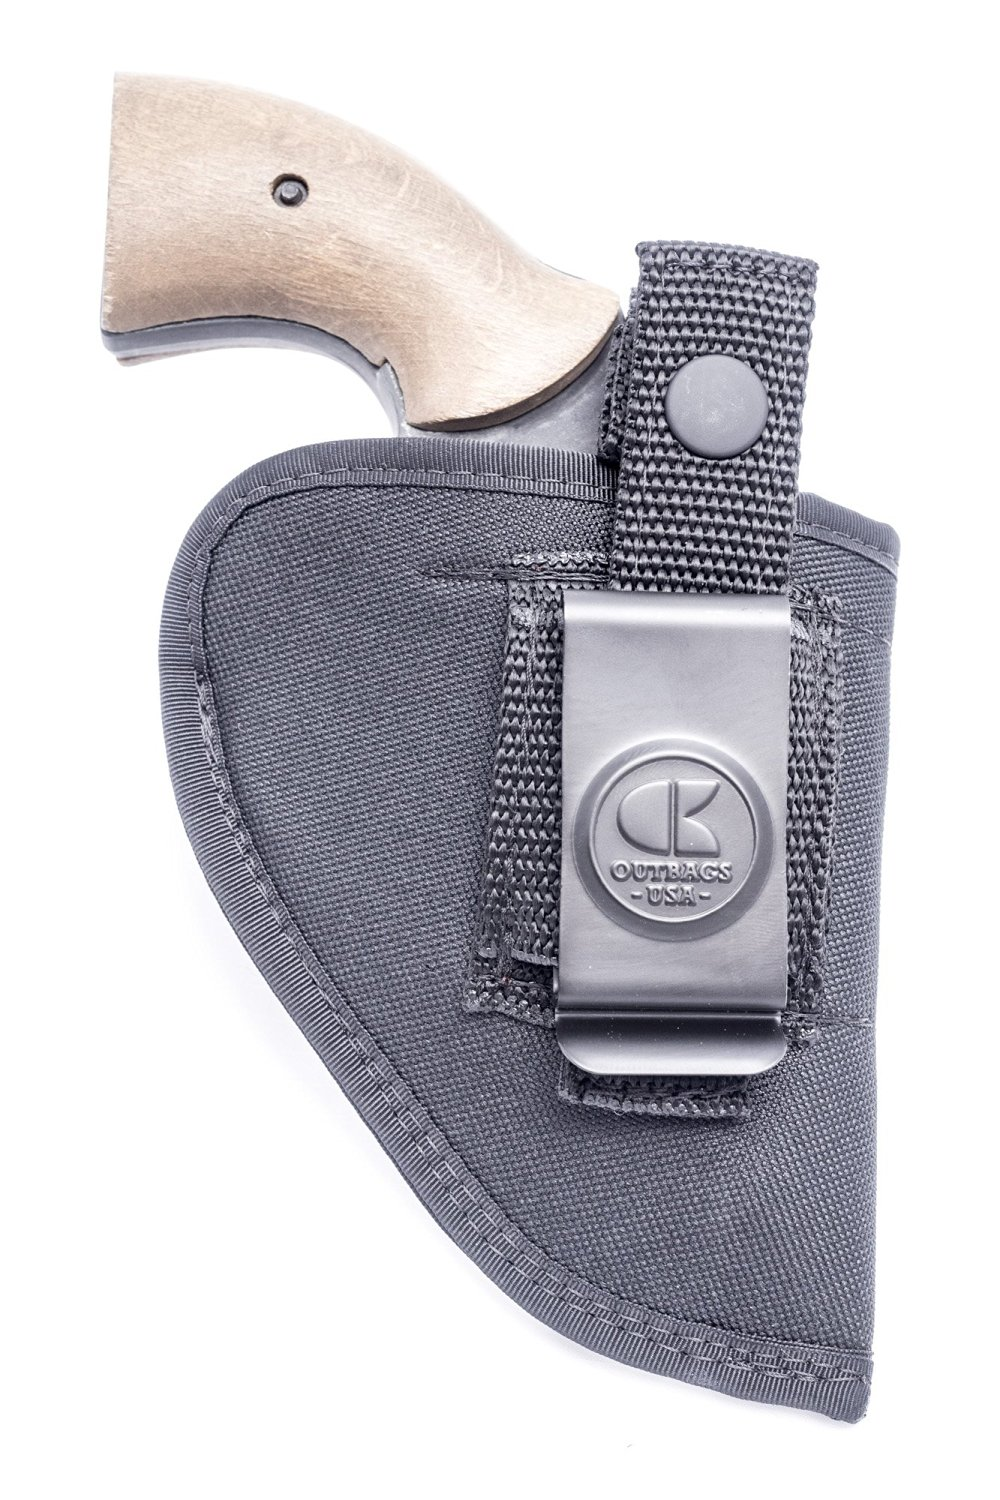 MADE IN USA S/&W Chiefs Special Nylon IWB OWB Combo Holster